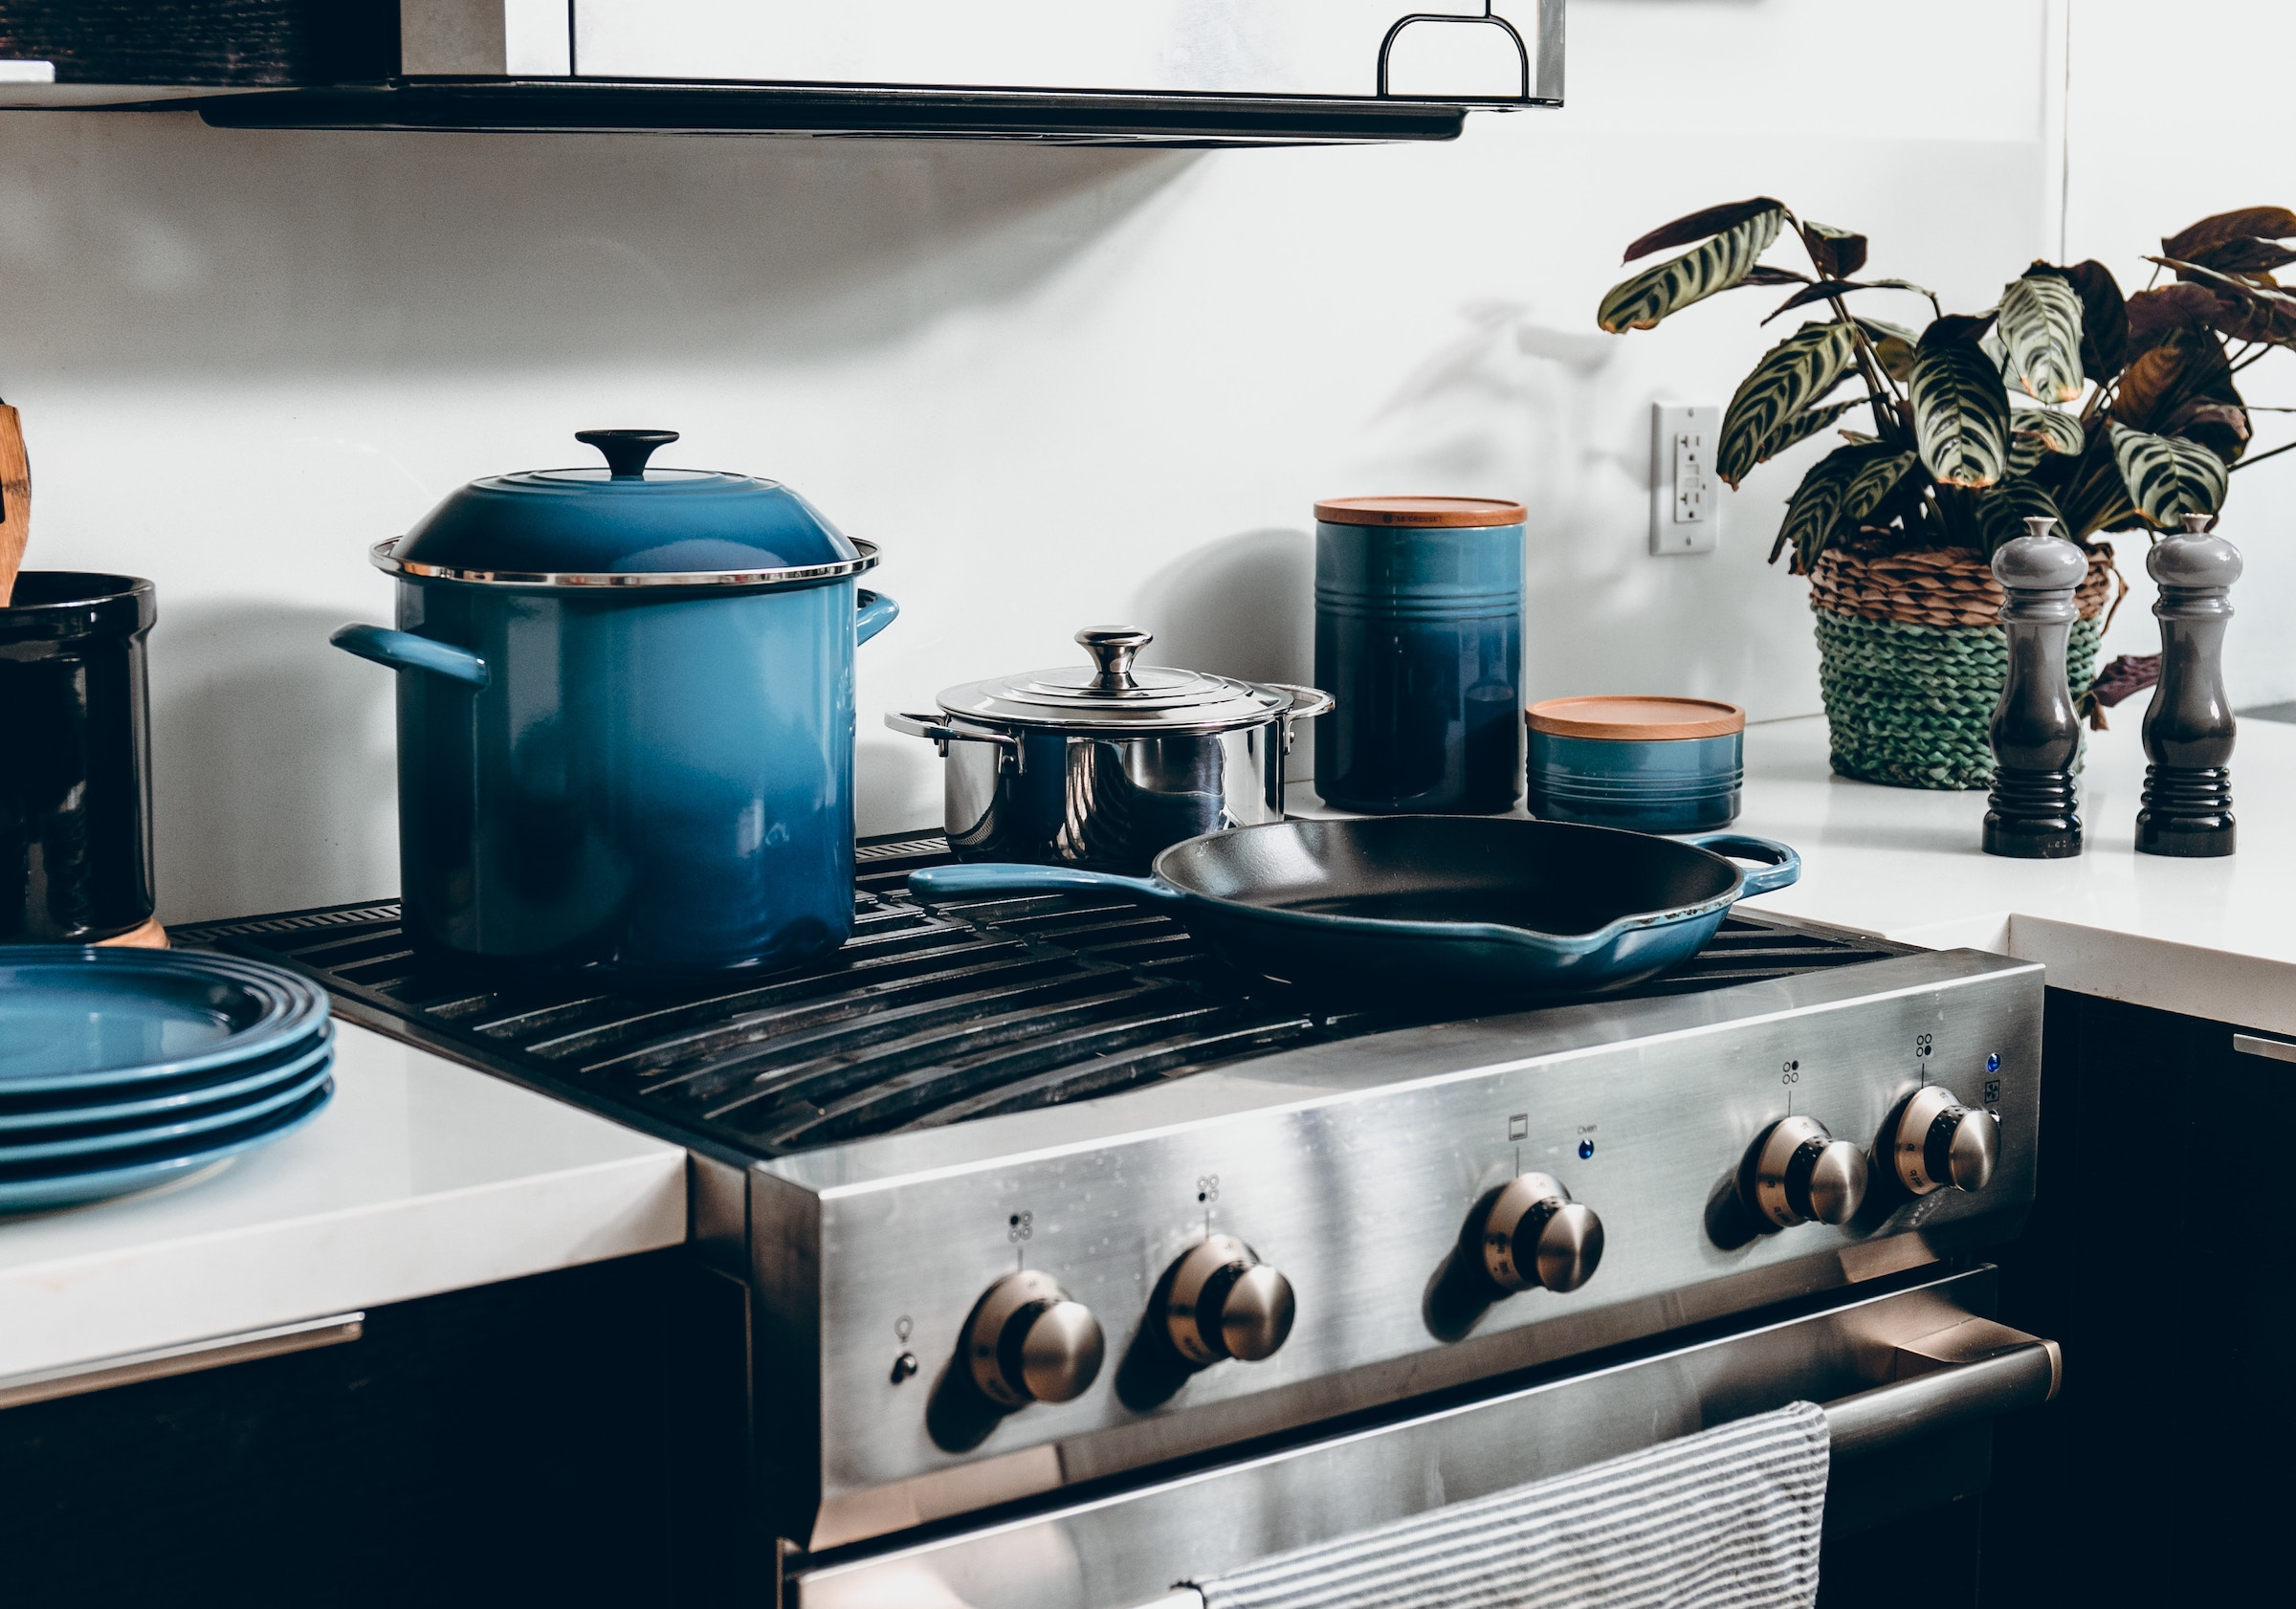 The best black Friday appliance deals 2019 for ranges and ovens